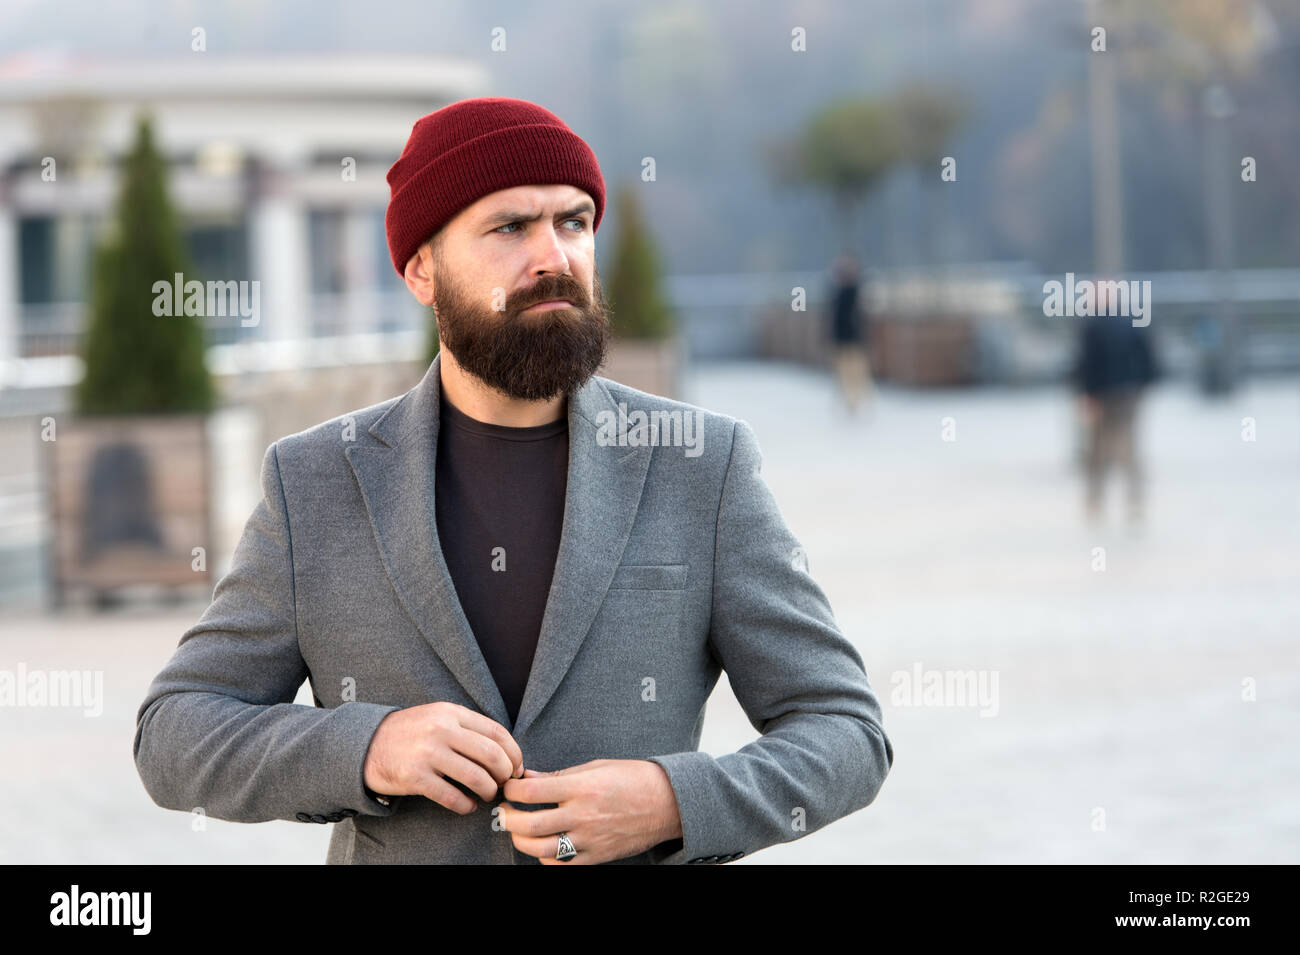 Outfit hat accessory. Hipster outfit. Stylish casual outfit for fall and  winter season. Menswear and male fashion concept. Man bearded hipster  stylish ... 113de8b046c7